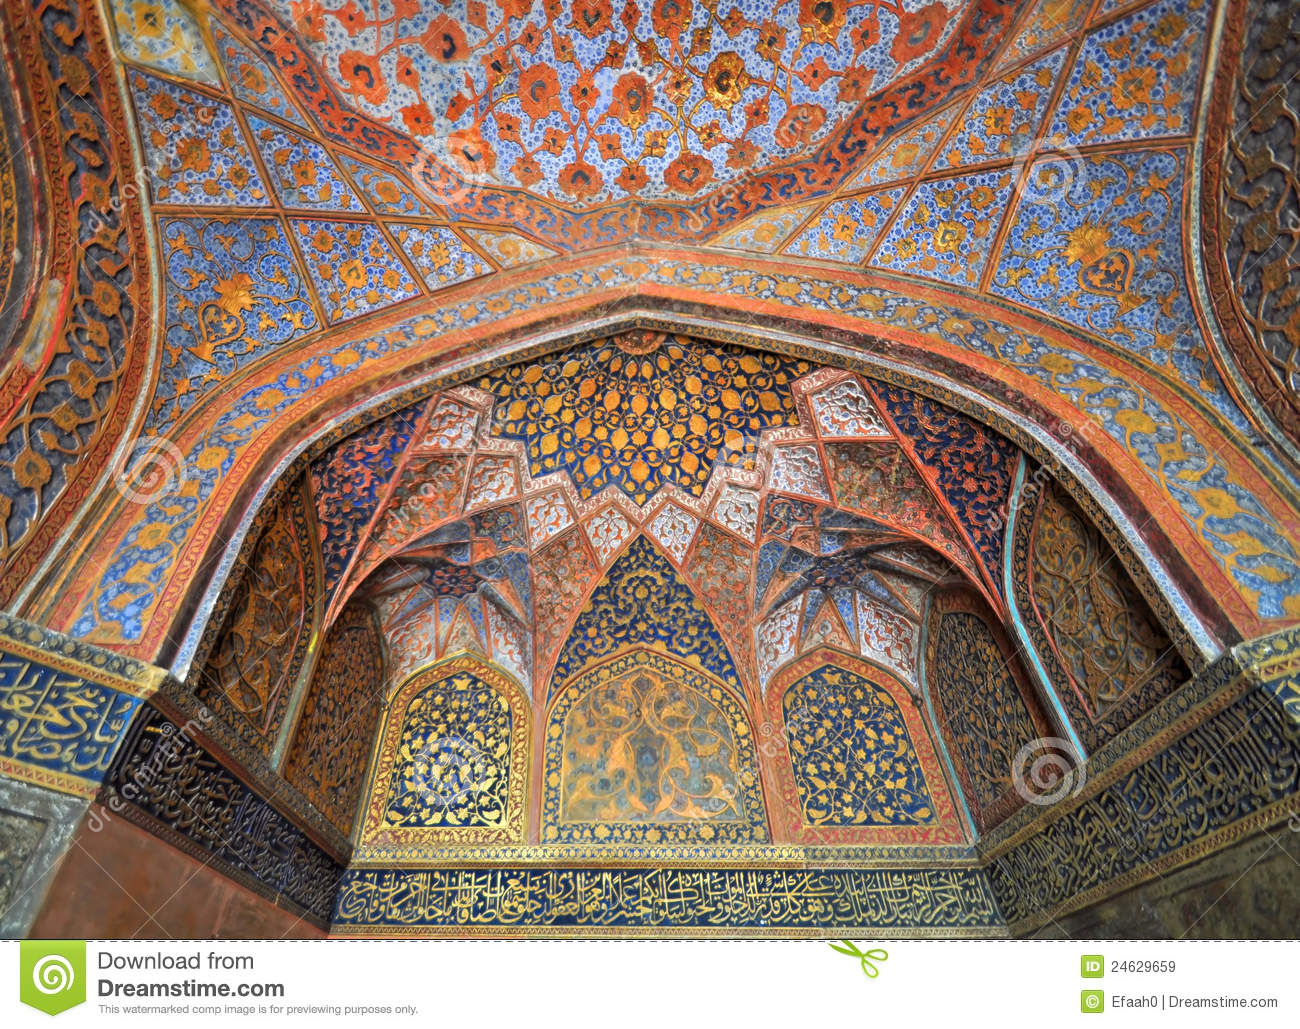 Stock Interiors Com >> Ornate Dome At Emperor Akbar's Tomb Stock Image - Image: 24629659